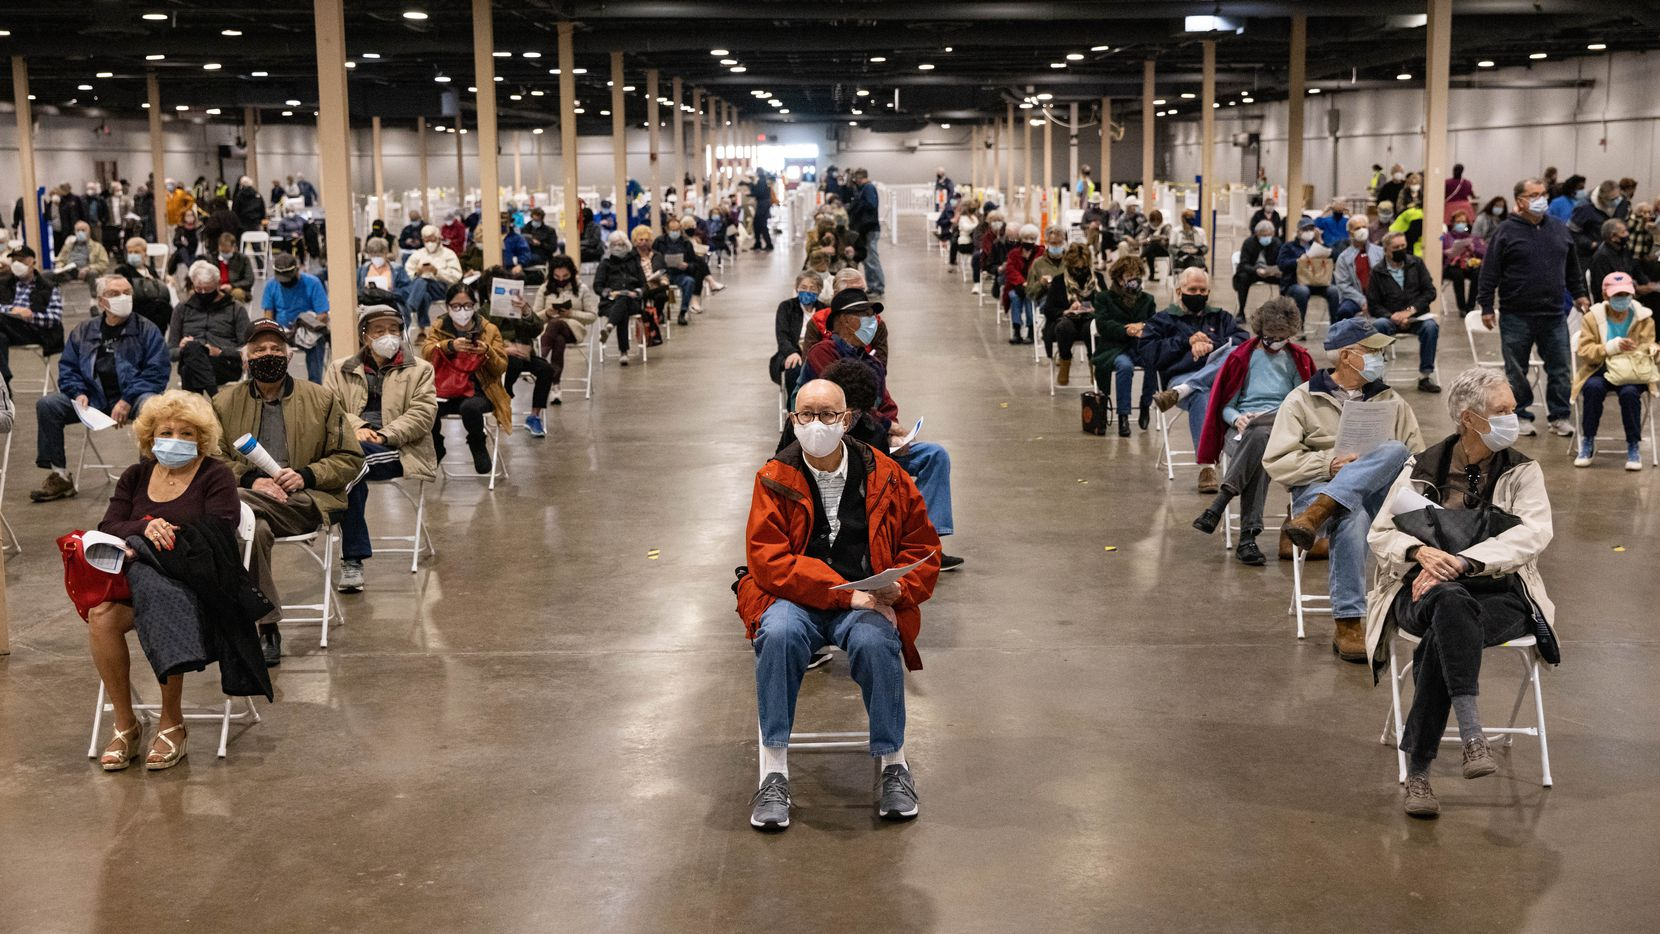 People wait to receive the COVID-19 vaccine at Fair Park in Dallas. Residents of Mesquite who live in both Dallas or Kaufman counties can register for the COVID-19 vaccine through Dallas County.